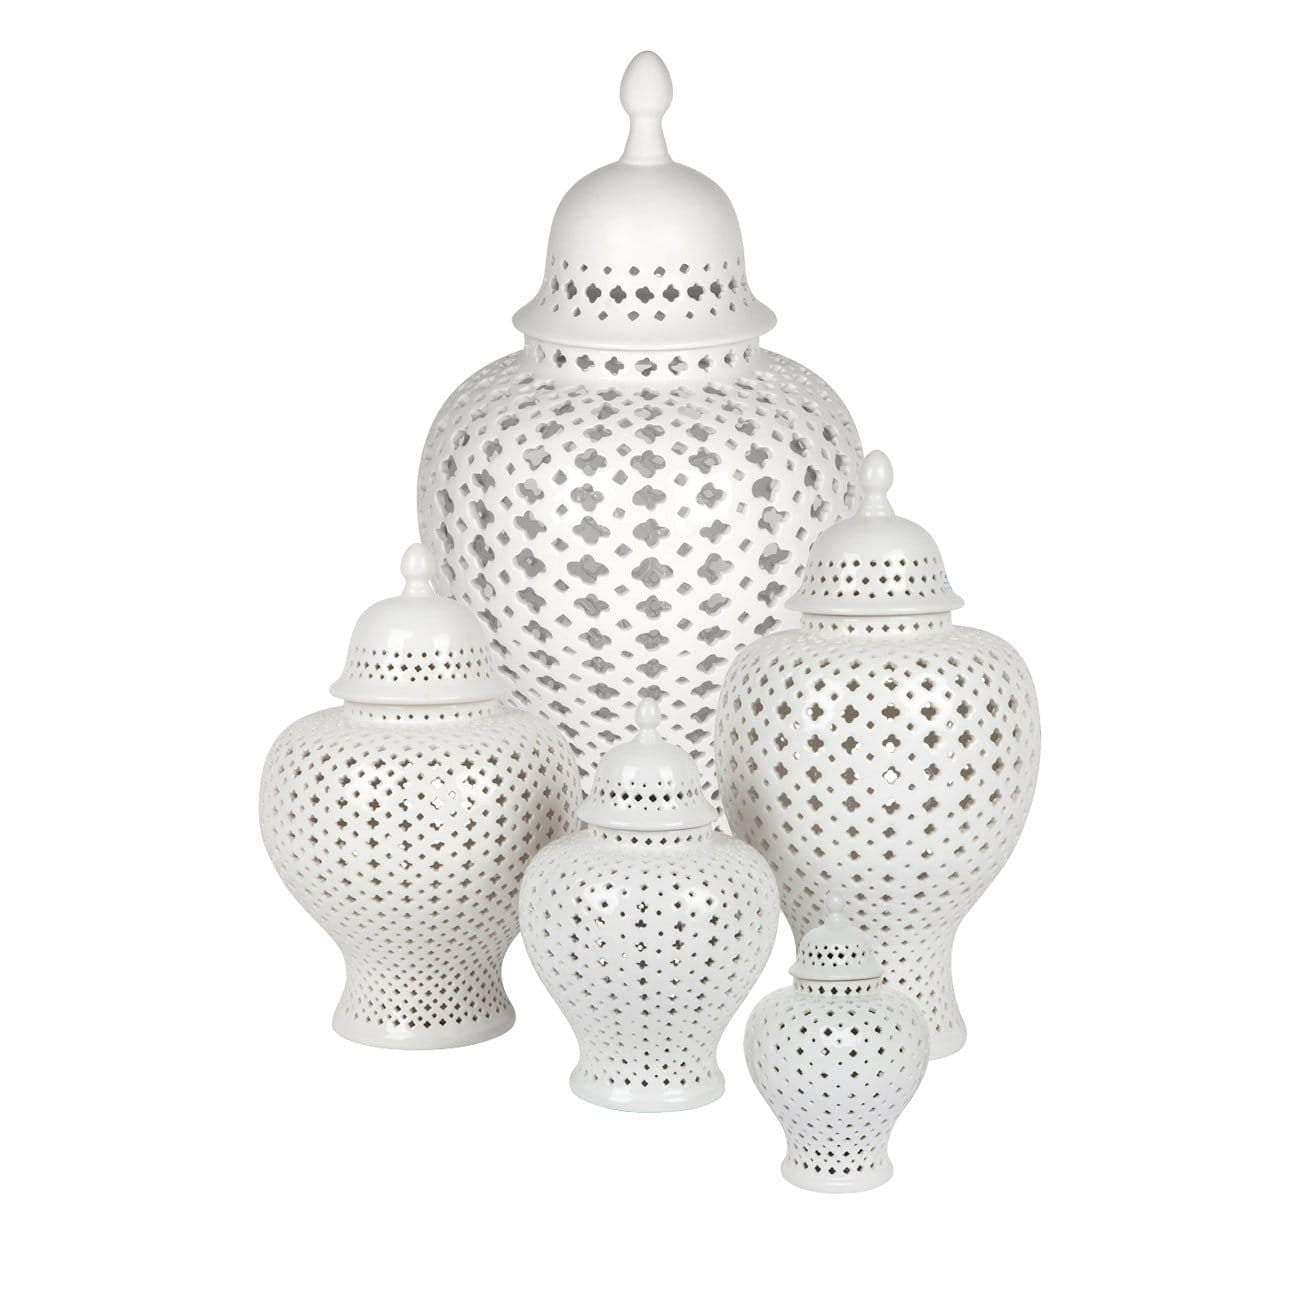 Minx White Temple Jar | White Temple Jars